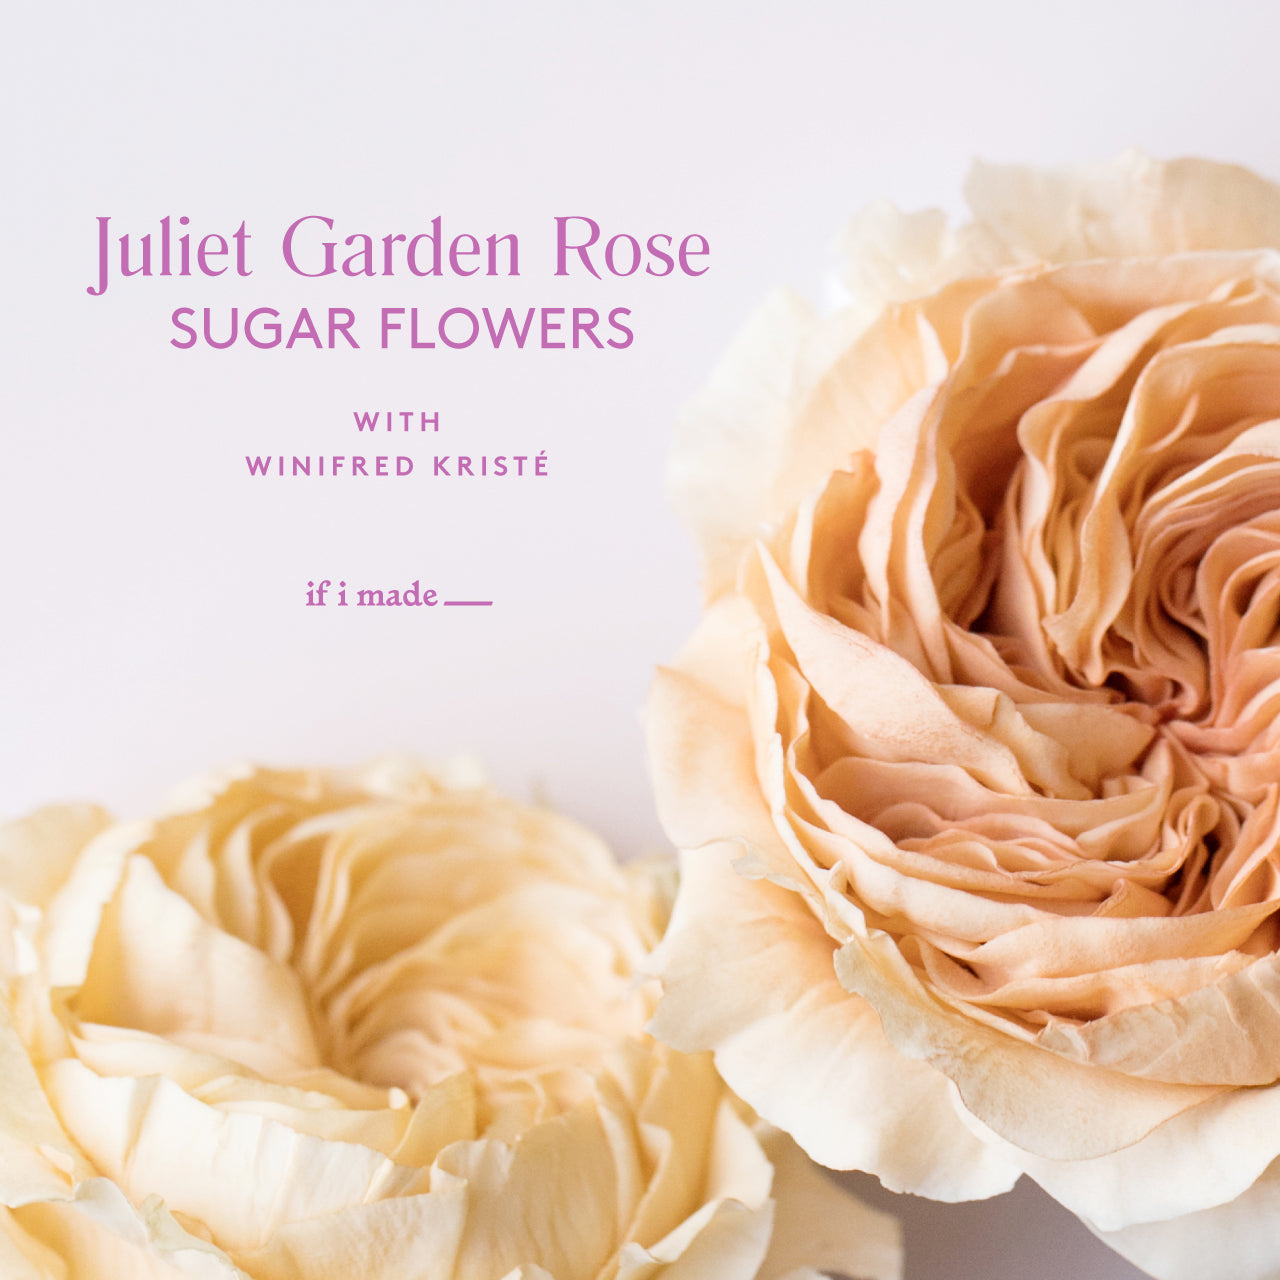 Sale: Juliet Garden Rose with Winifred Kristé Cake